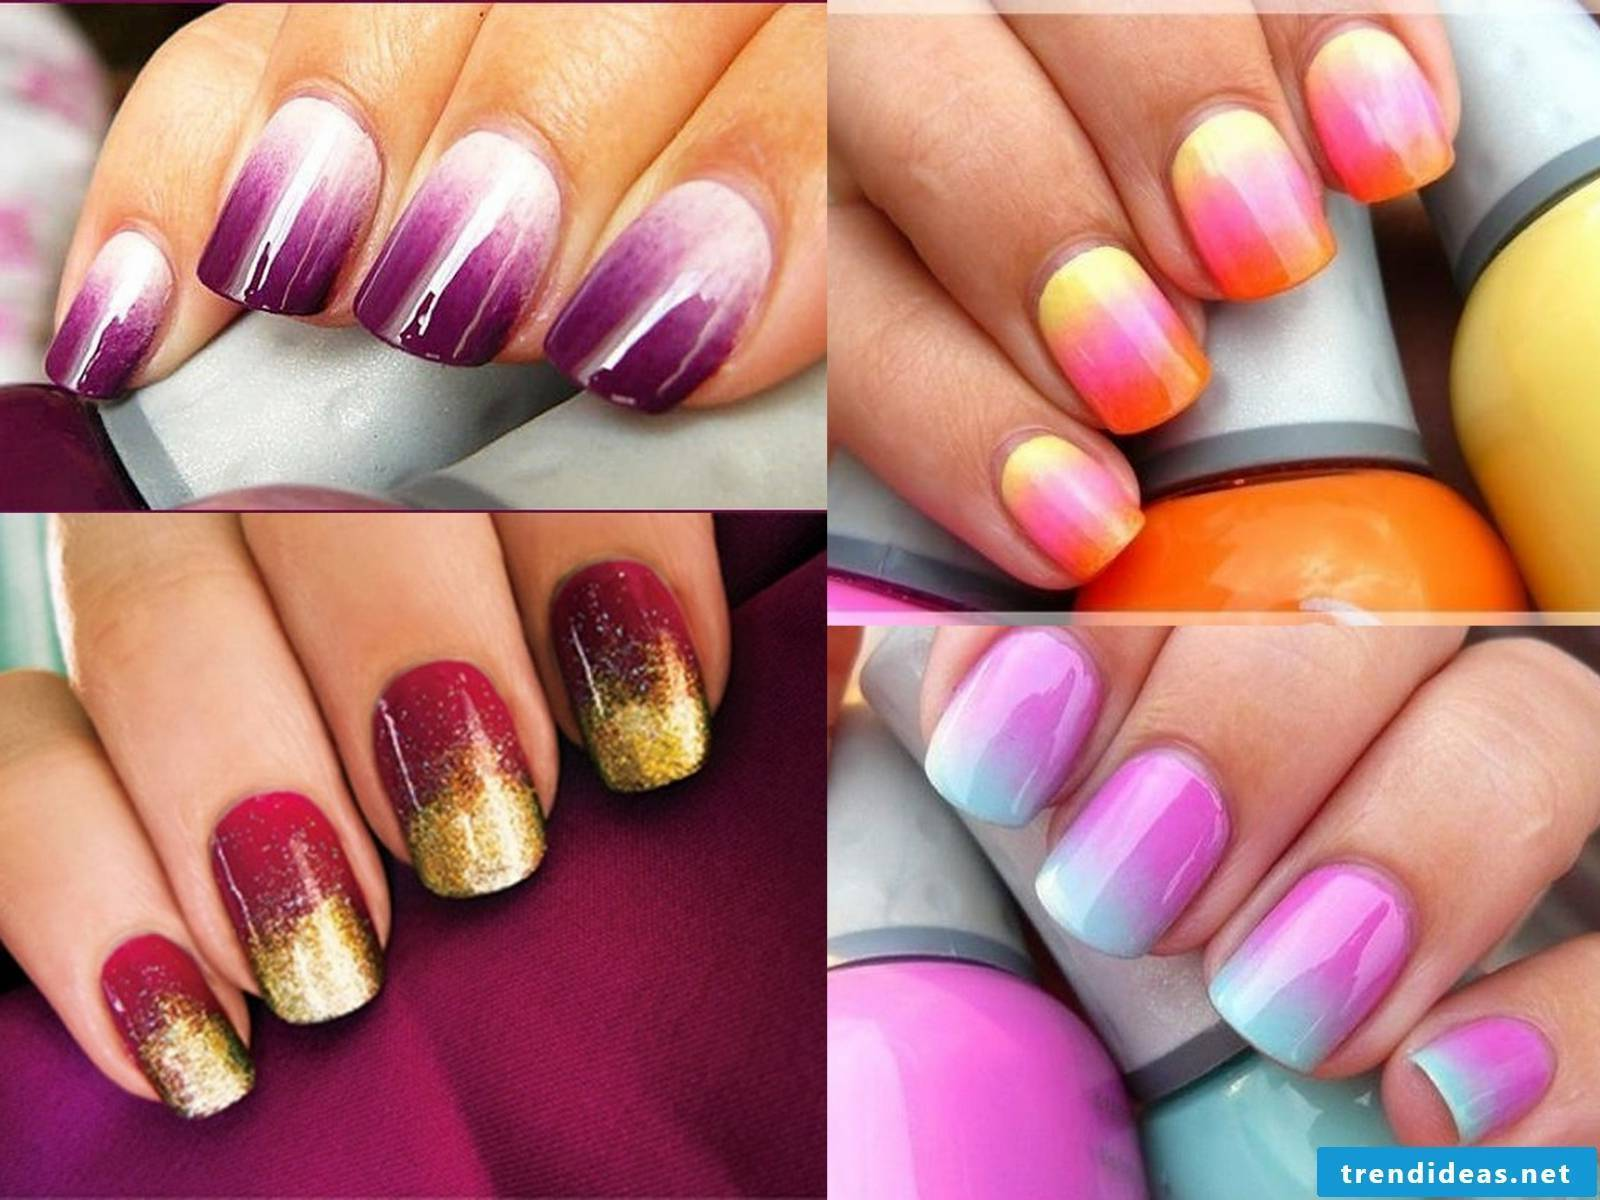 Ombre nail design - a nice decision